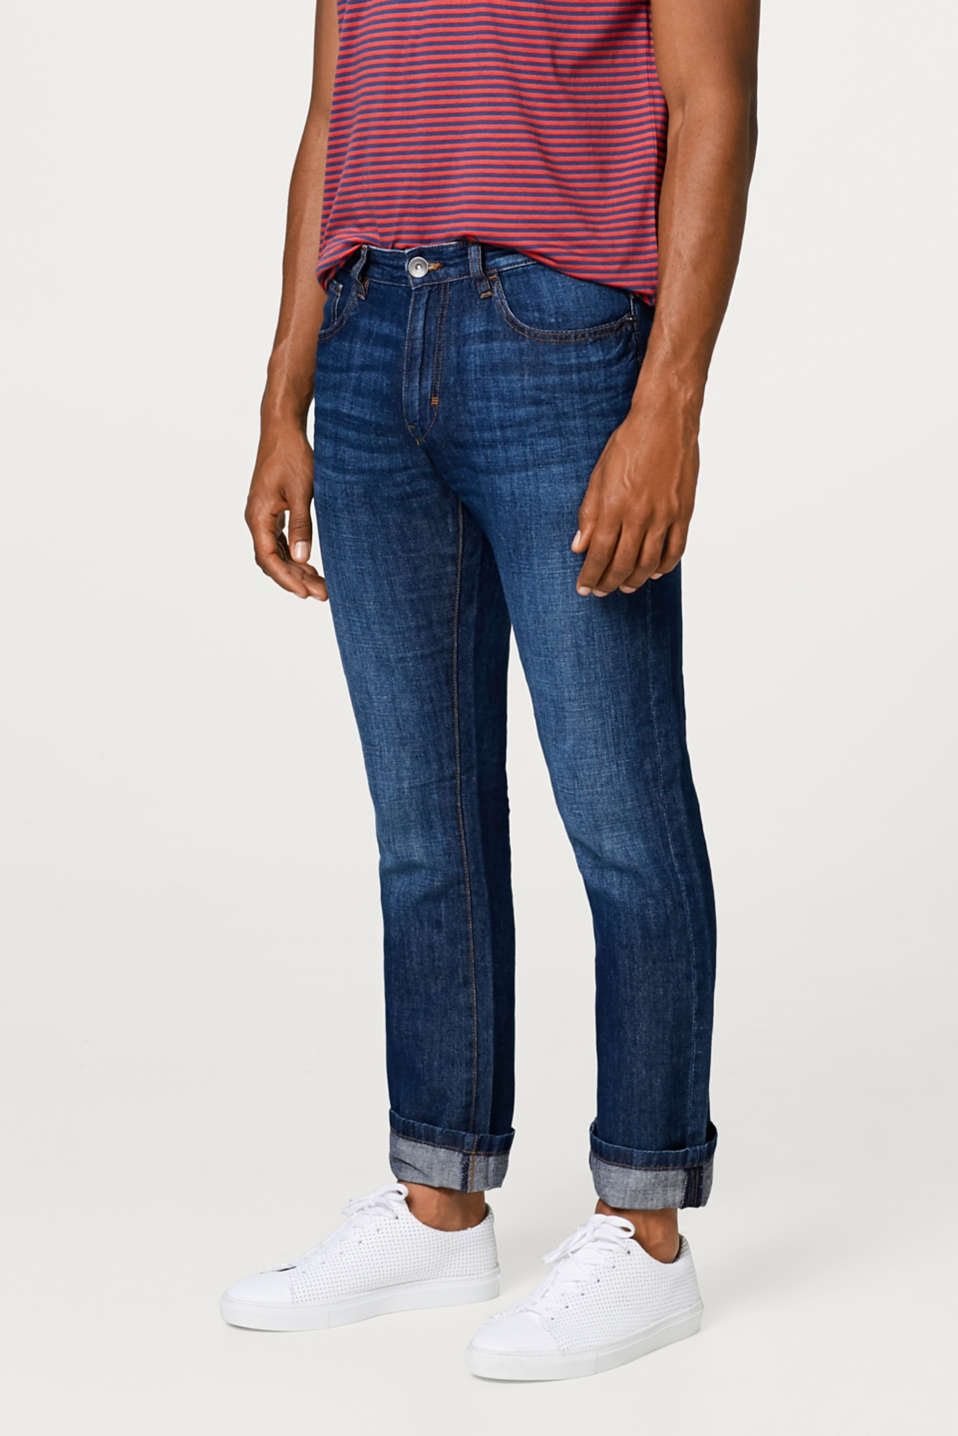 Esprit - Lightweight jeans in a cotton-linen blend